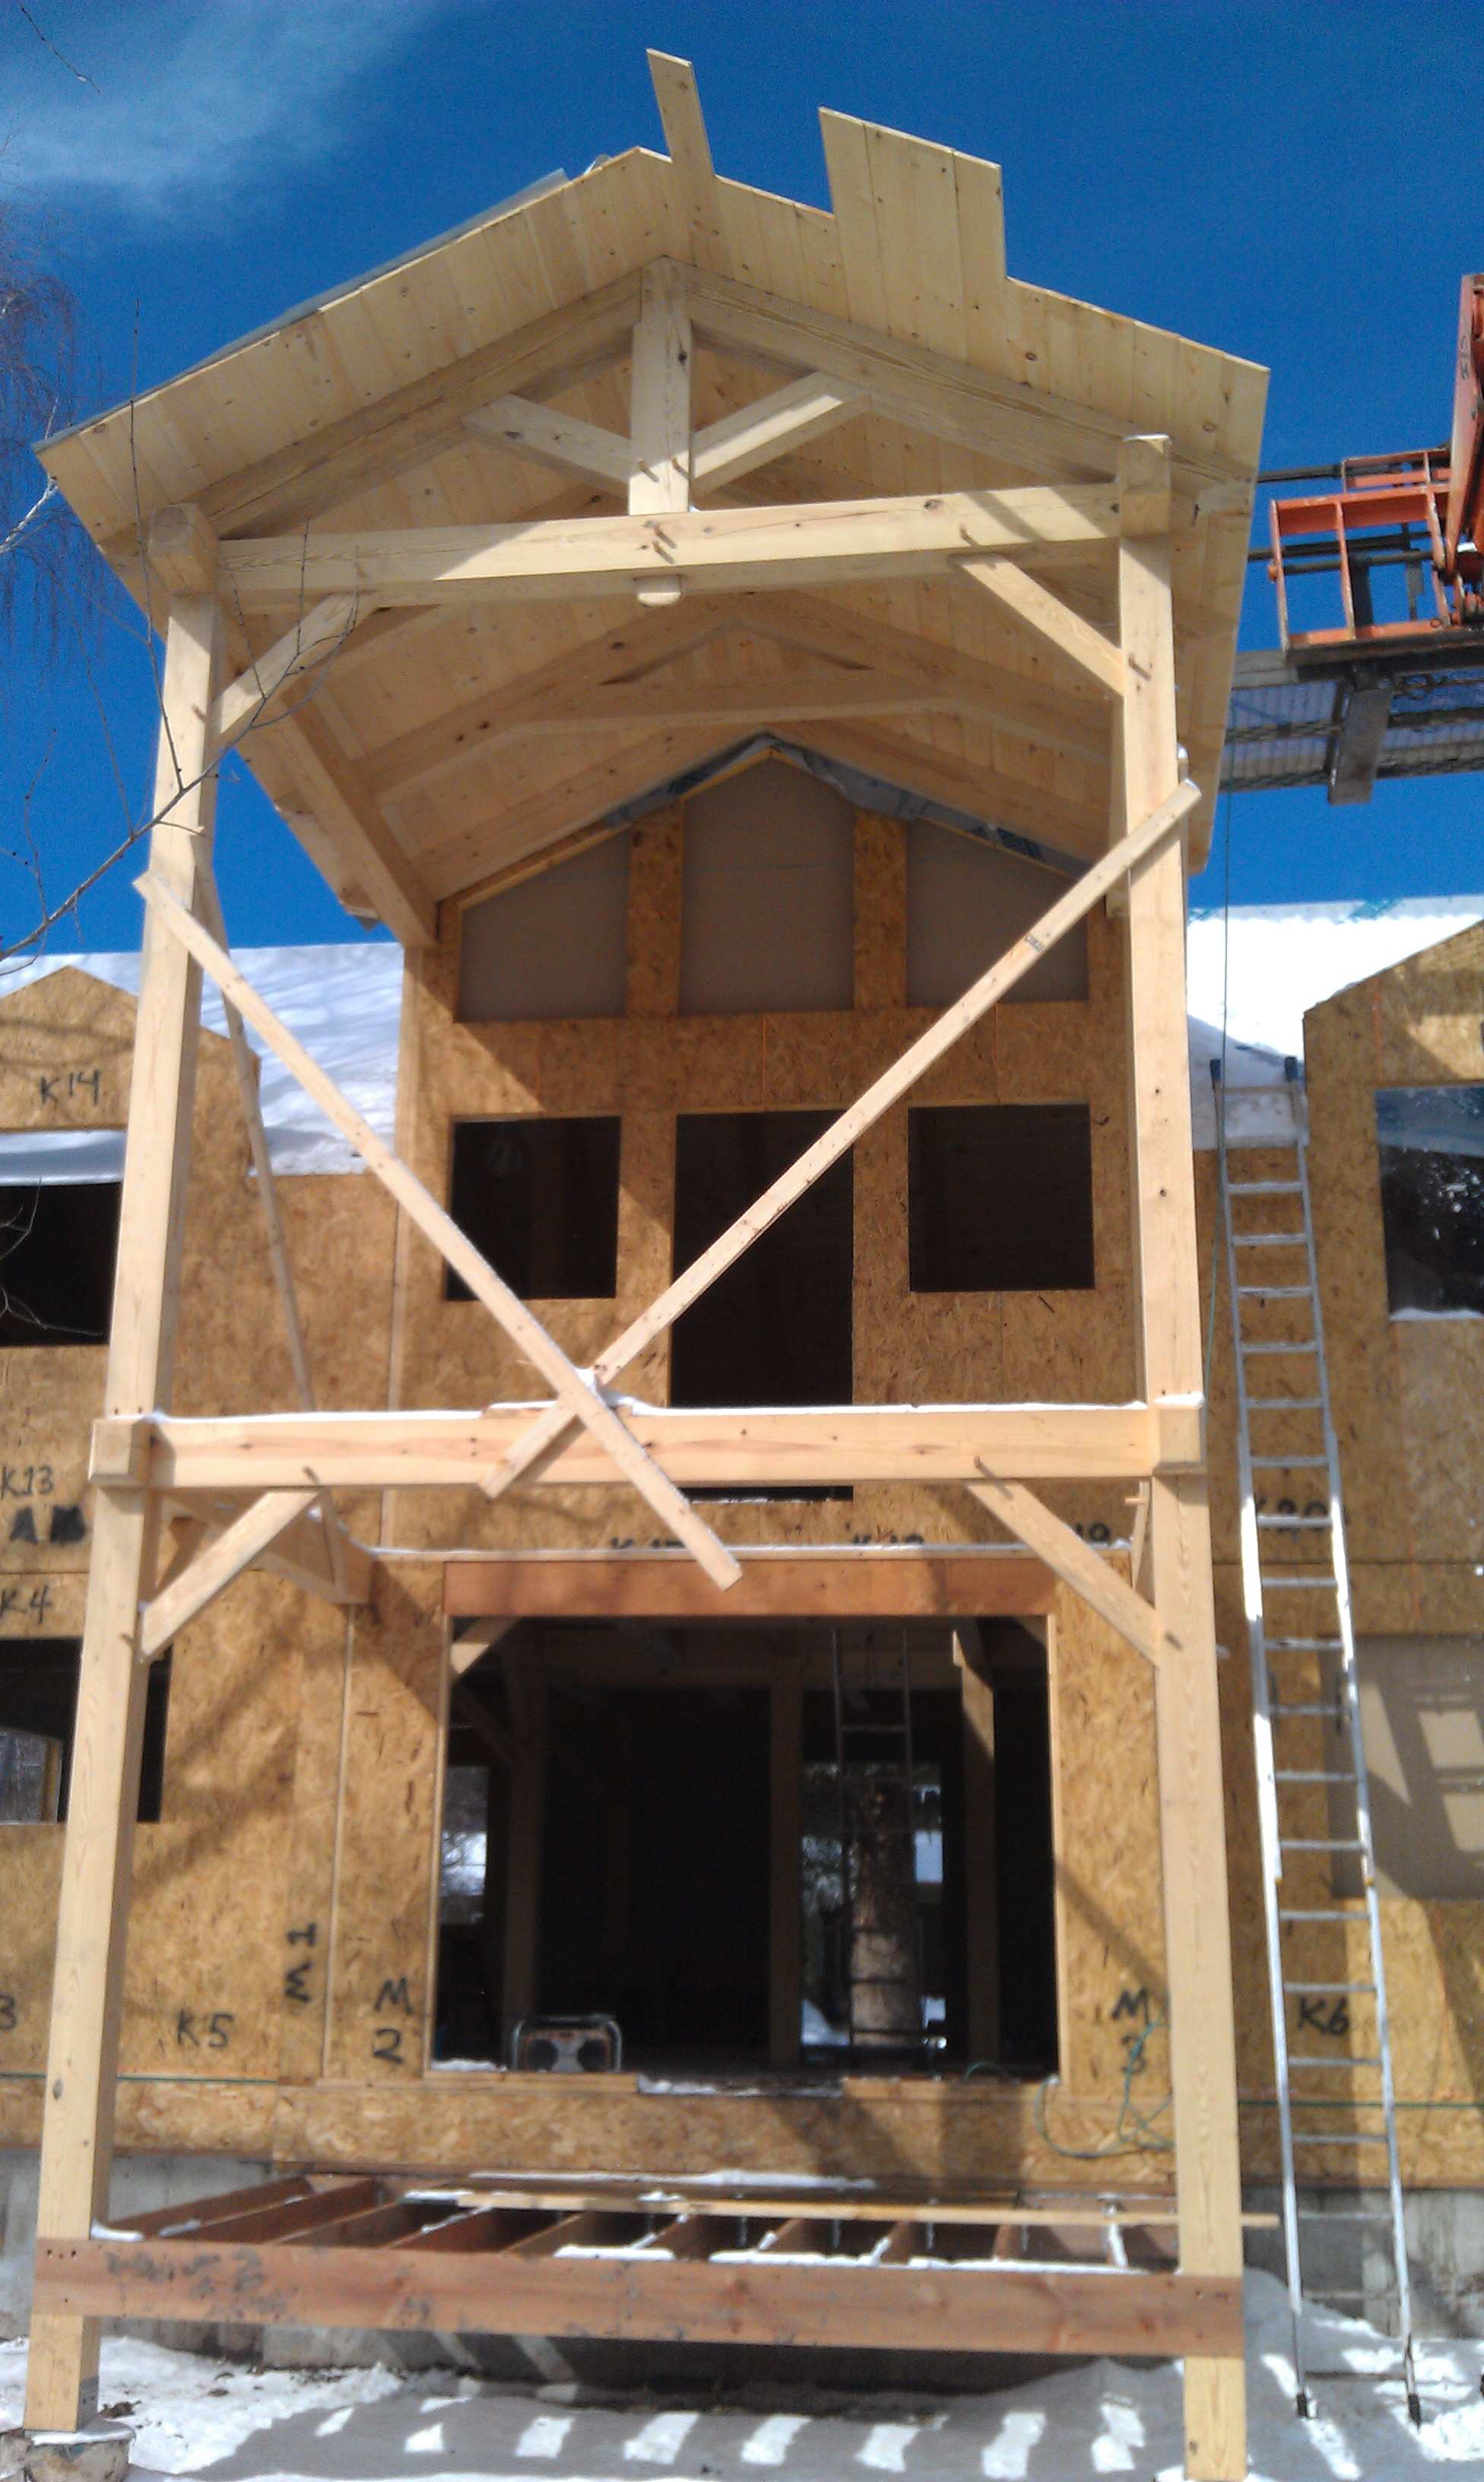 Black Canyon Builders, Durango, CO, Timber frame joinery and details, SIPs panels